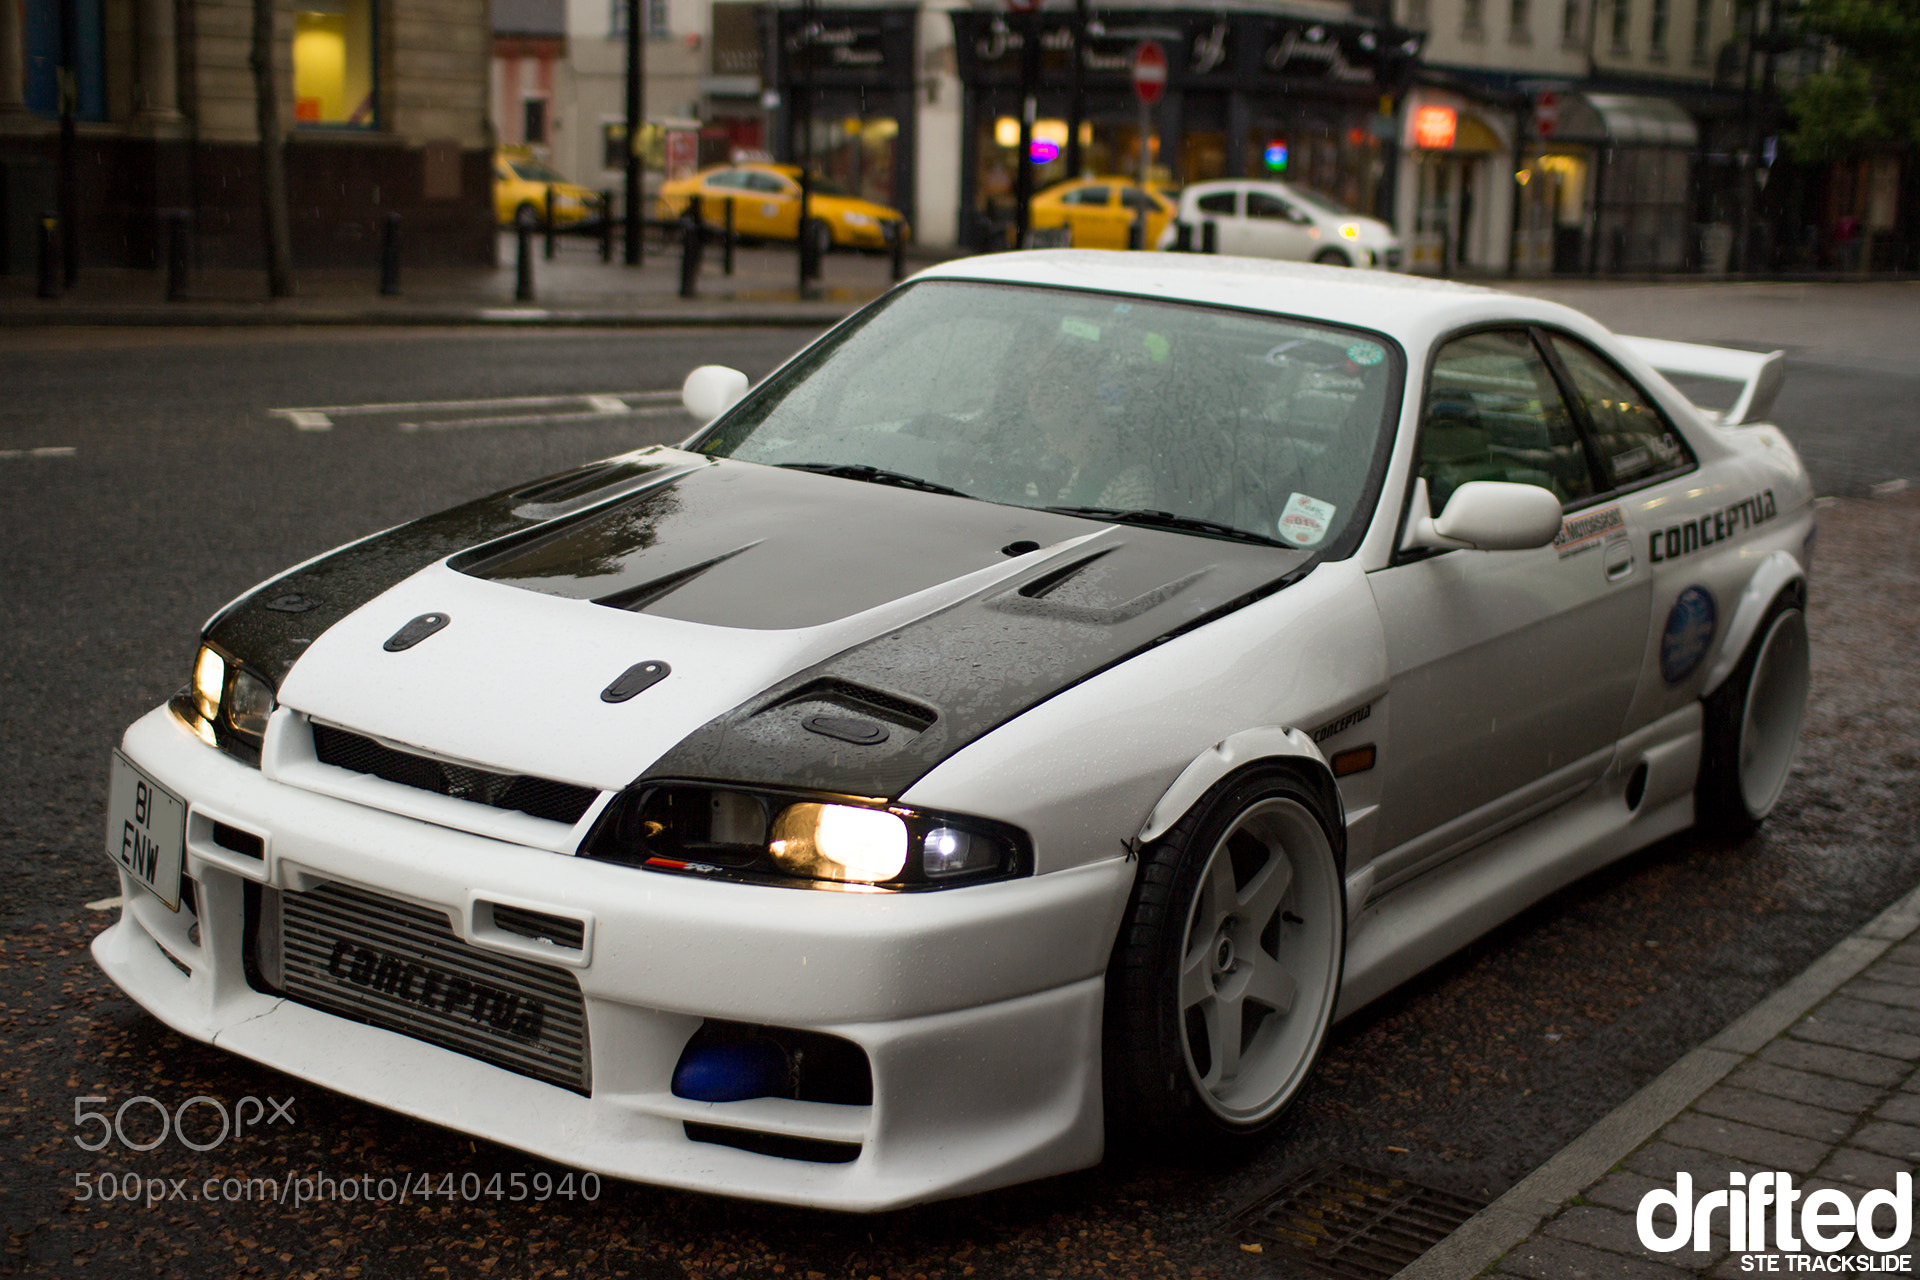 Photograph Hardcore Drift Skyline R33 on the Road... by Ste Trackslide on 500px